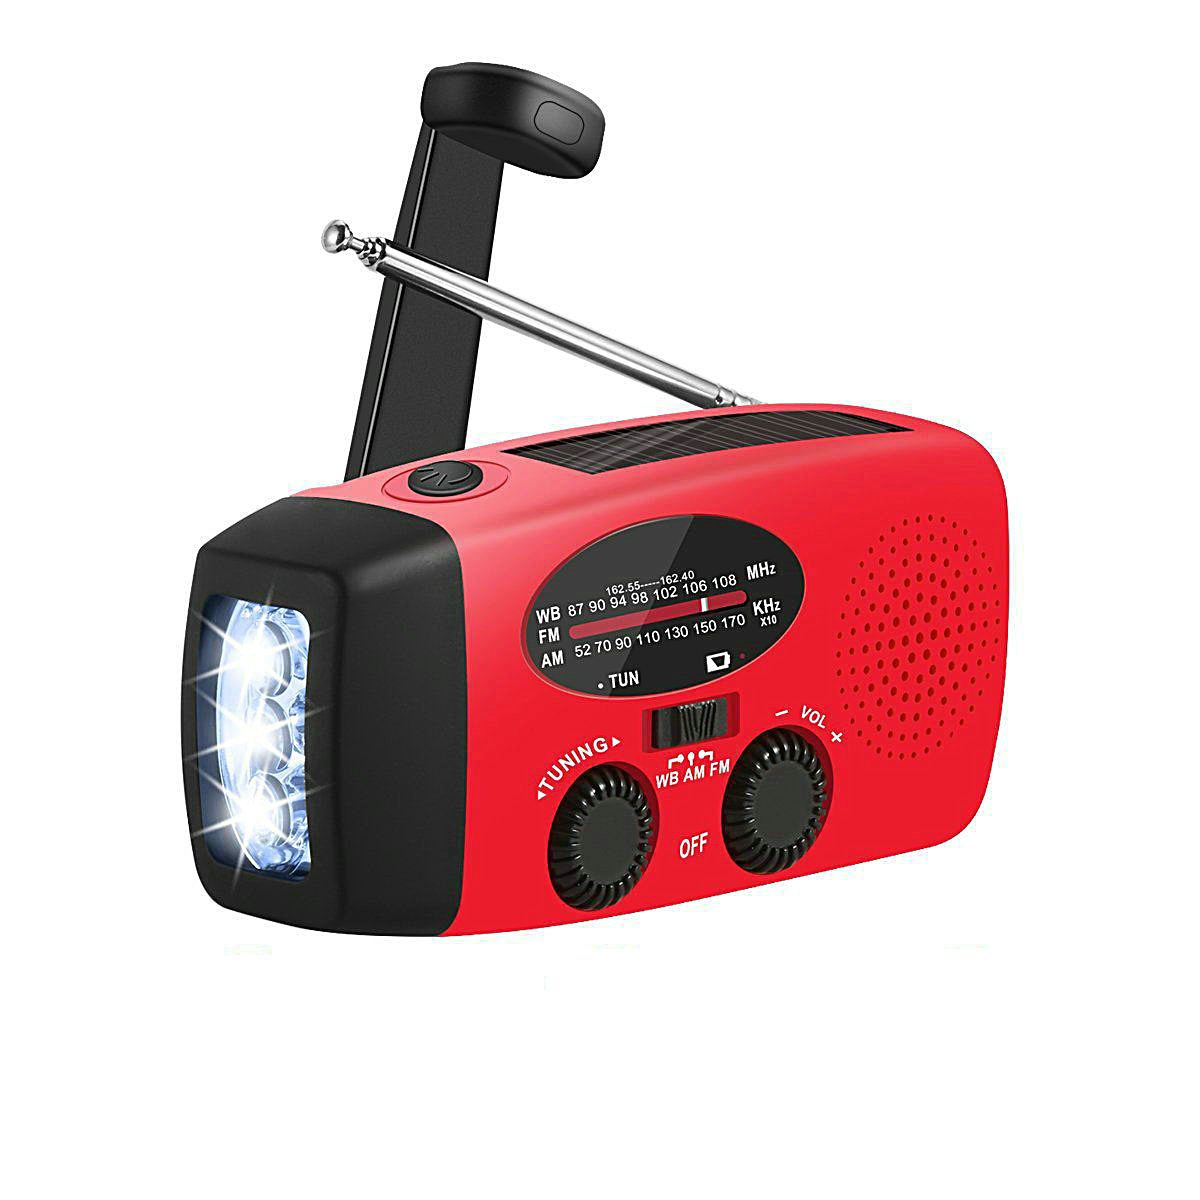 AM/FM/WB Solar Radio Speaker Alarm Clock Emergency Hand Crank Powerful 3 LED Flashlight USB Charging (Red)